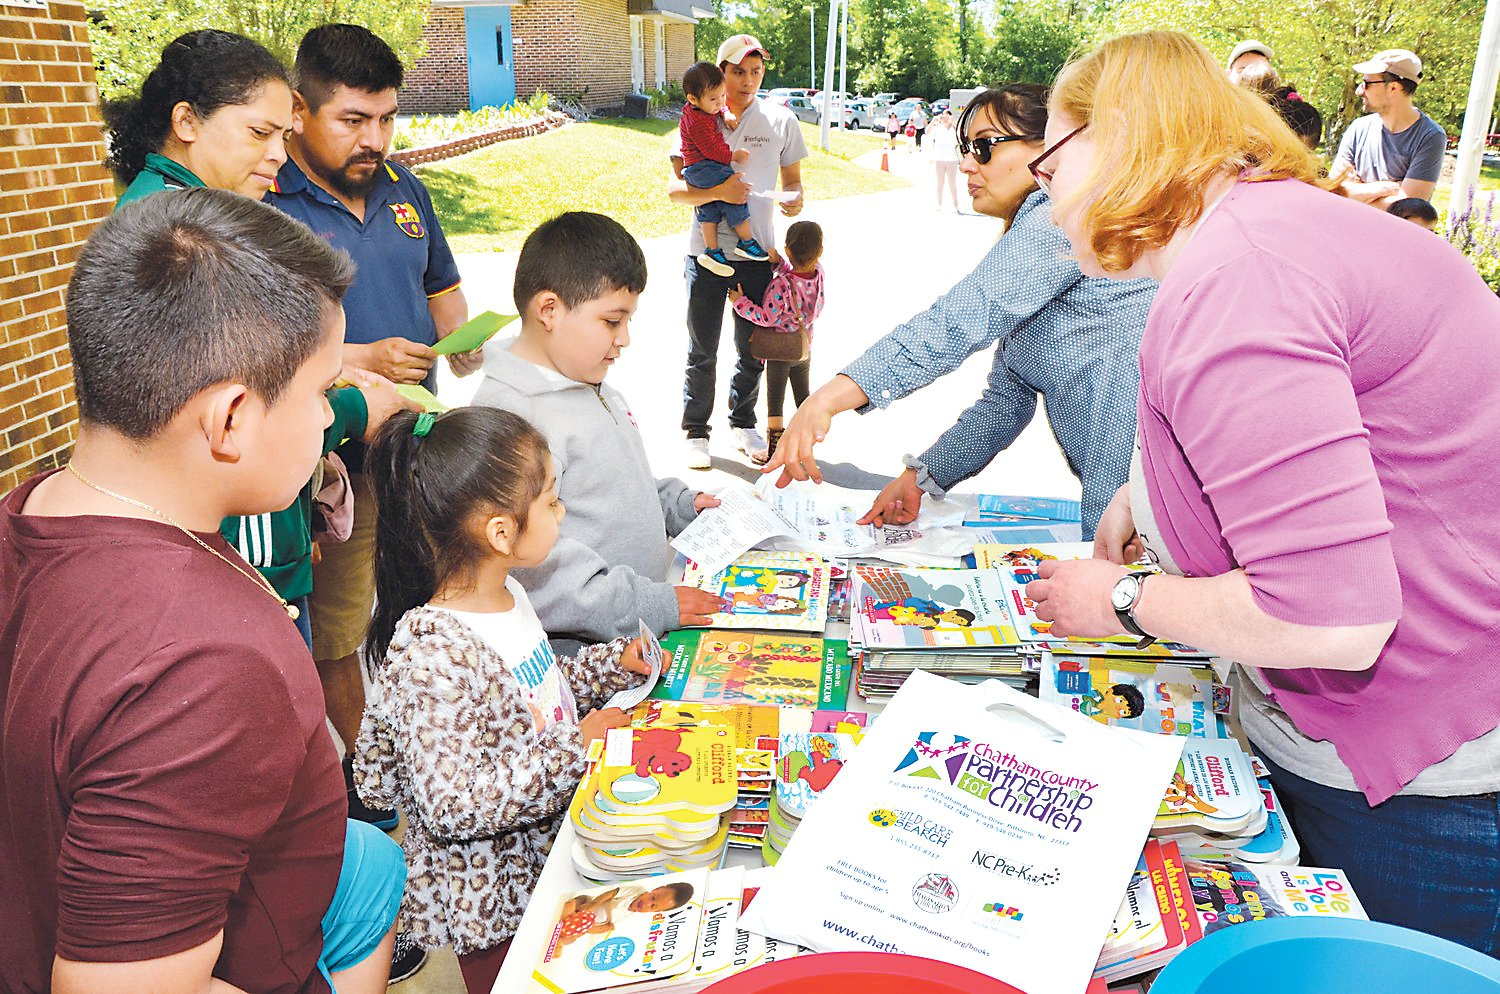 Belarmino Vicente and his family go through the registration table for The Day of the Books at Siler City Elementary School back in 2019. Each child receives a free bilingual book here before going into the building for more books and fun.